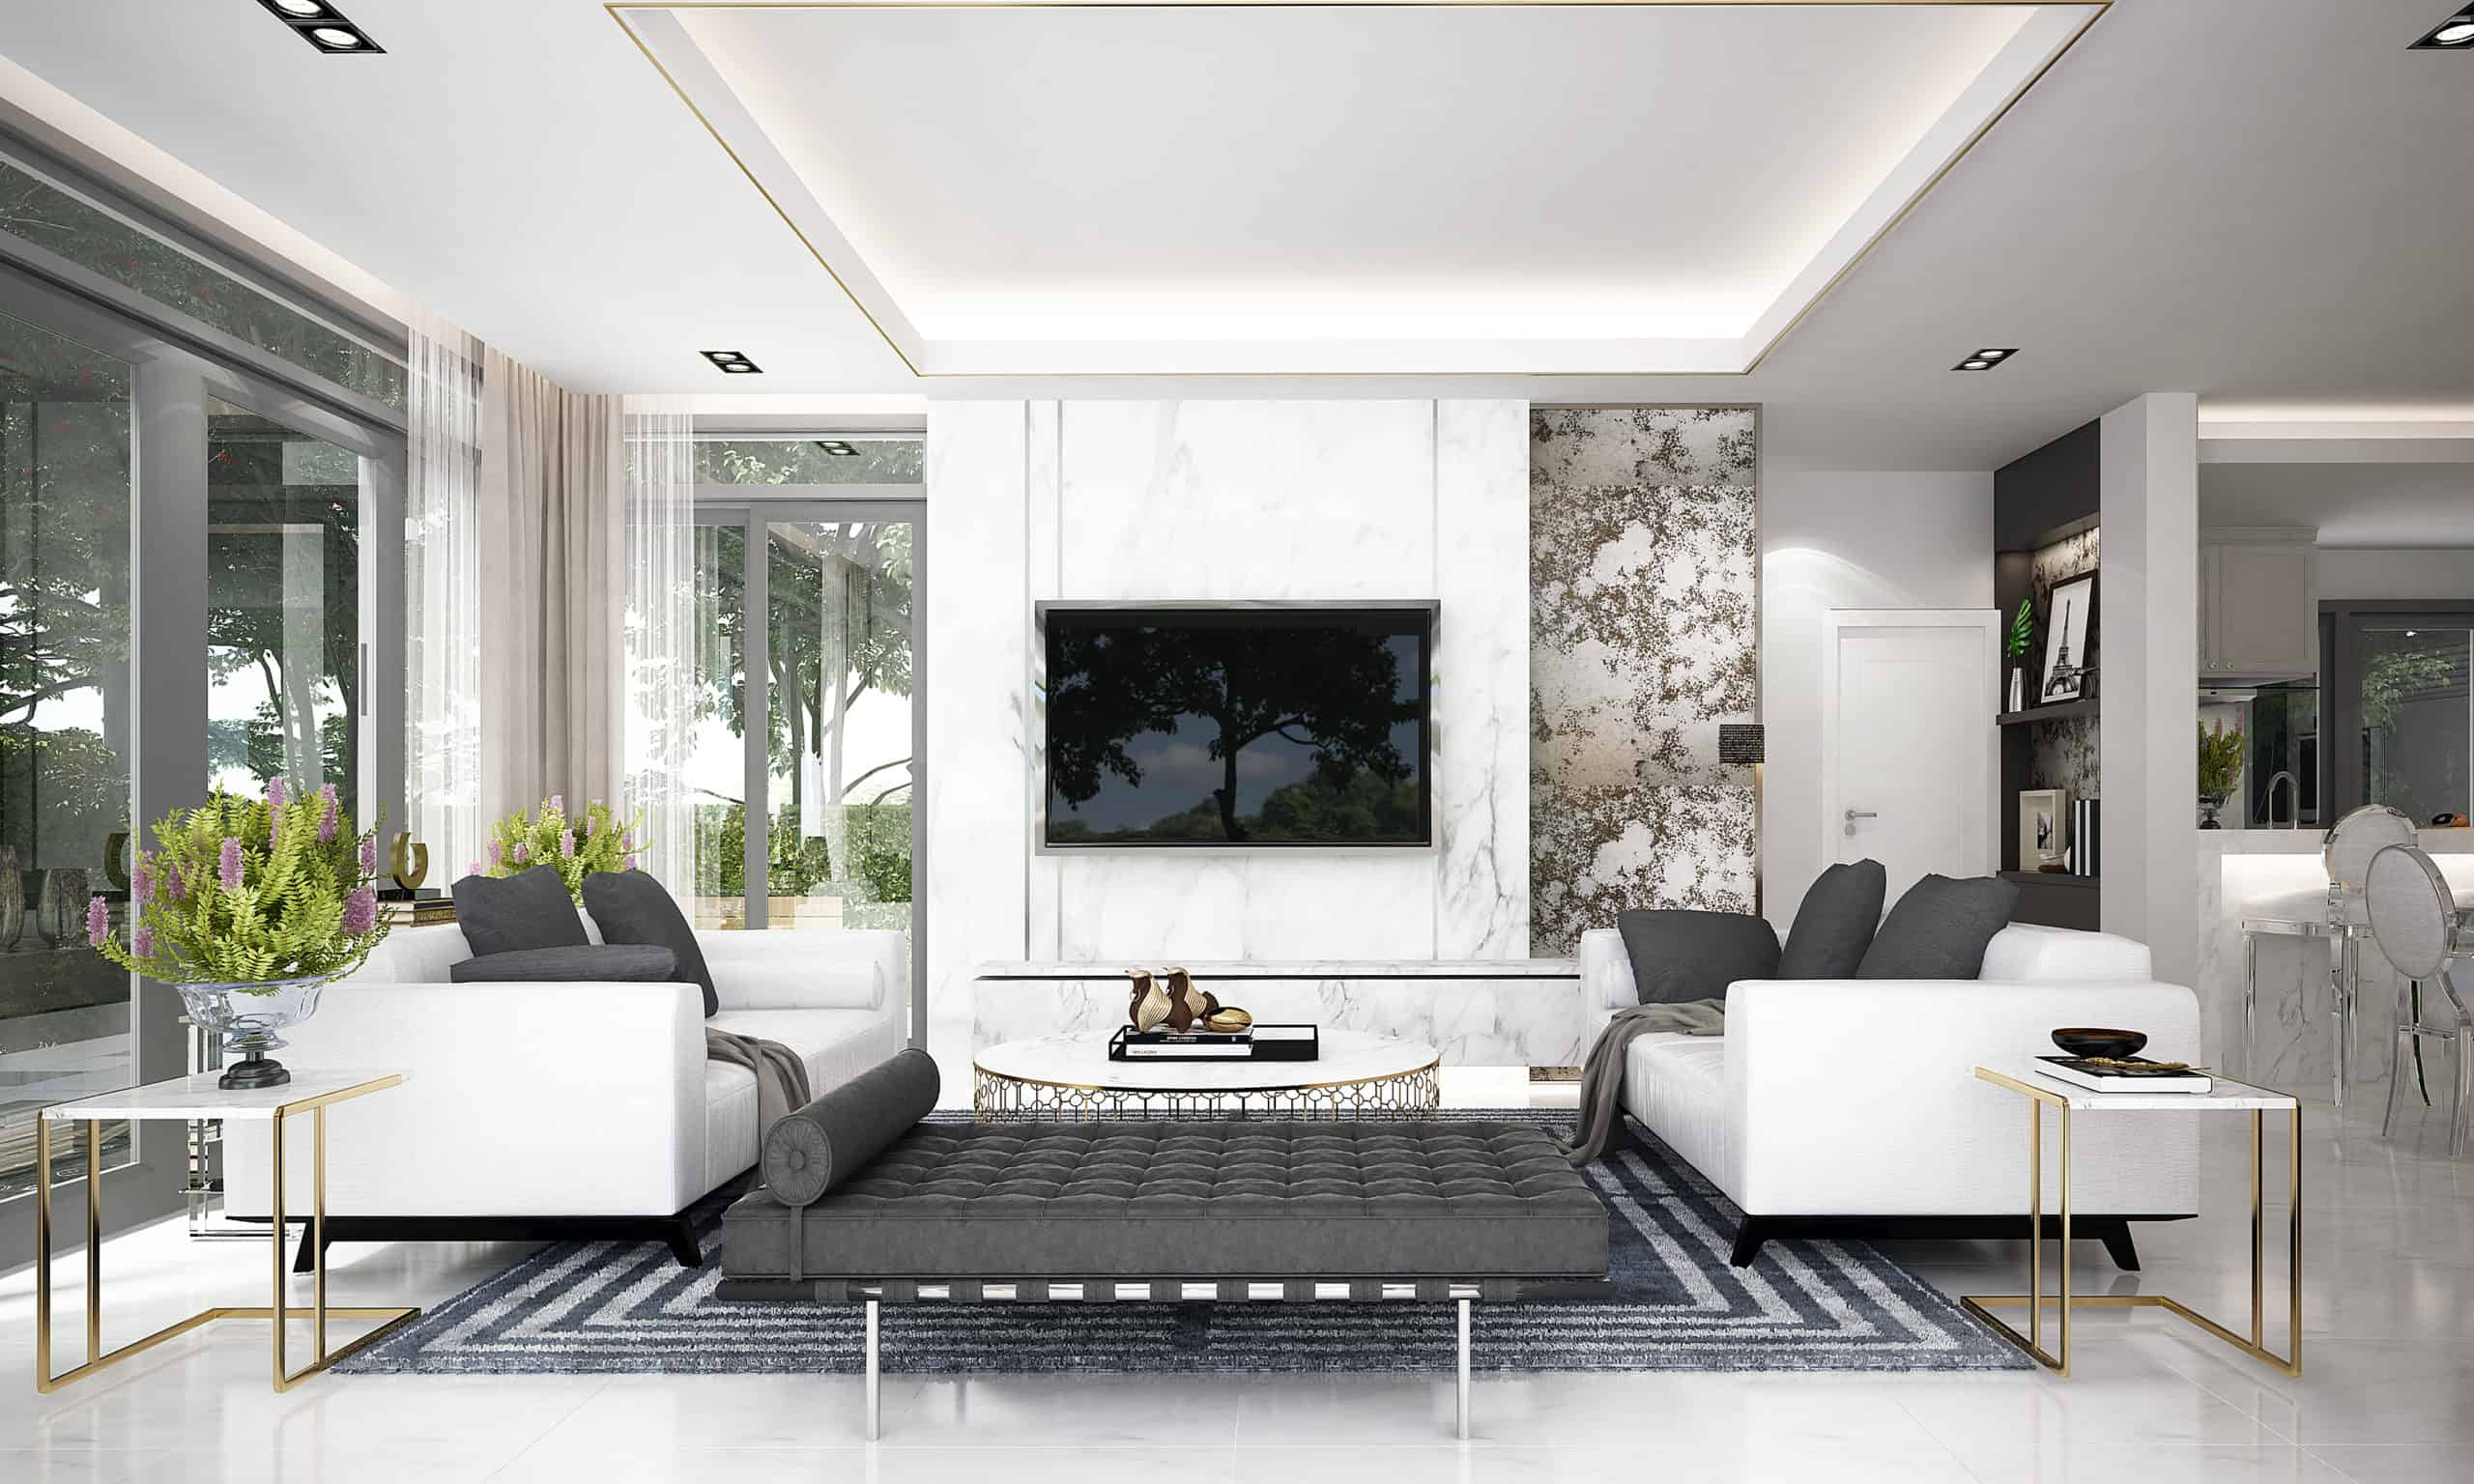 modern living room interior design and lcd tv and pantry area and garden view background tcp lighting